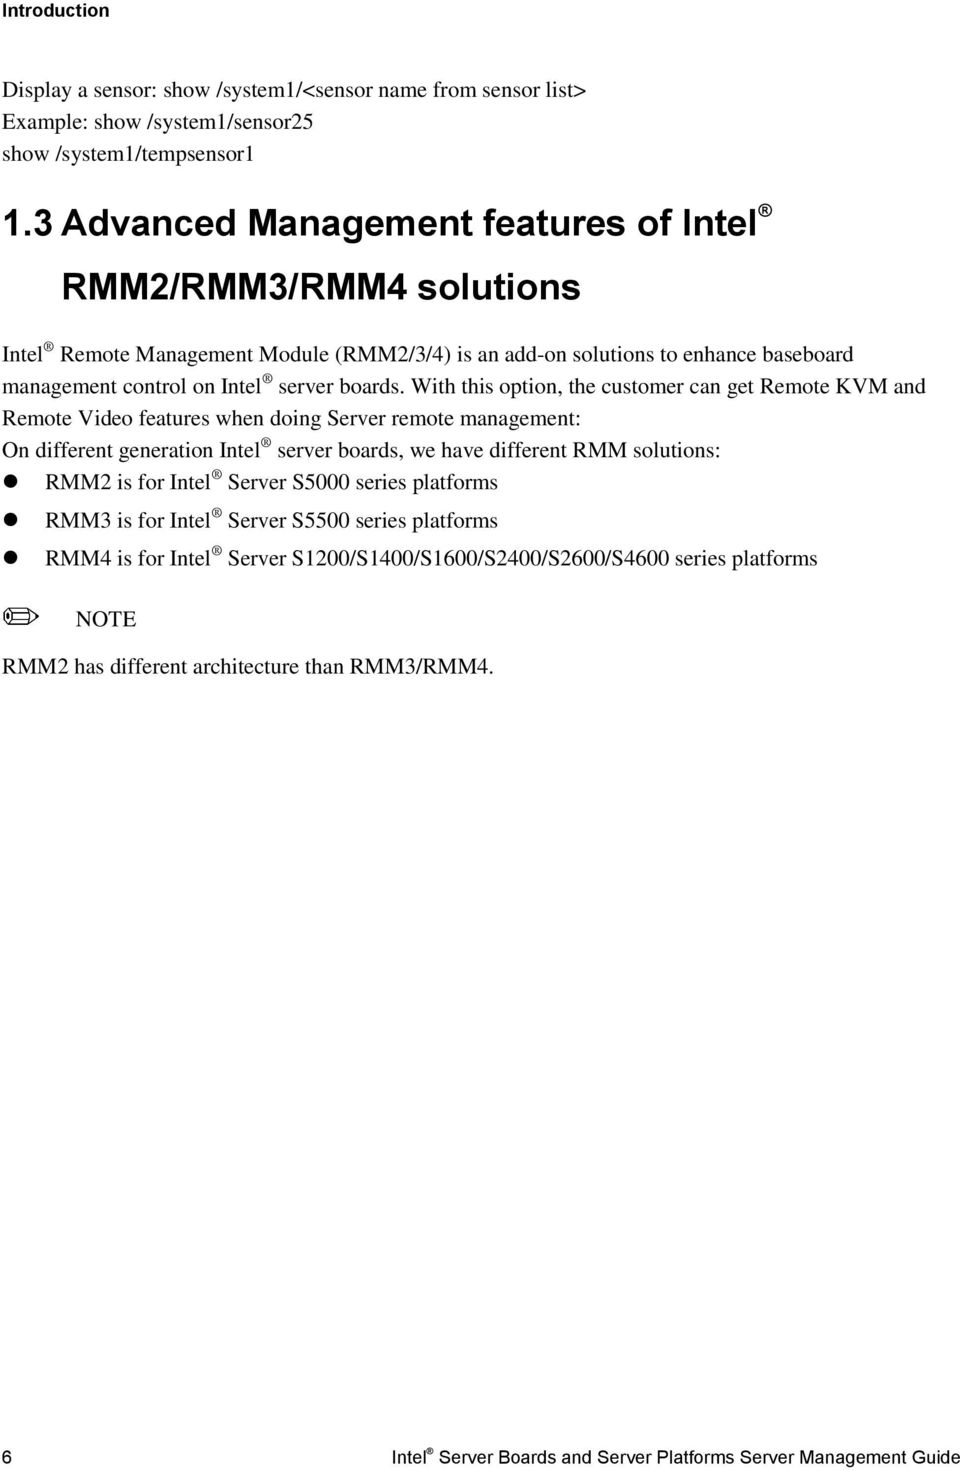 Intel remote management module 2 user guide pdf.